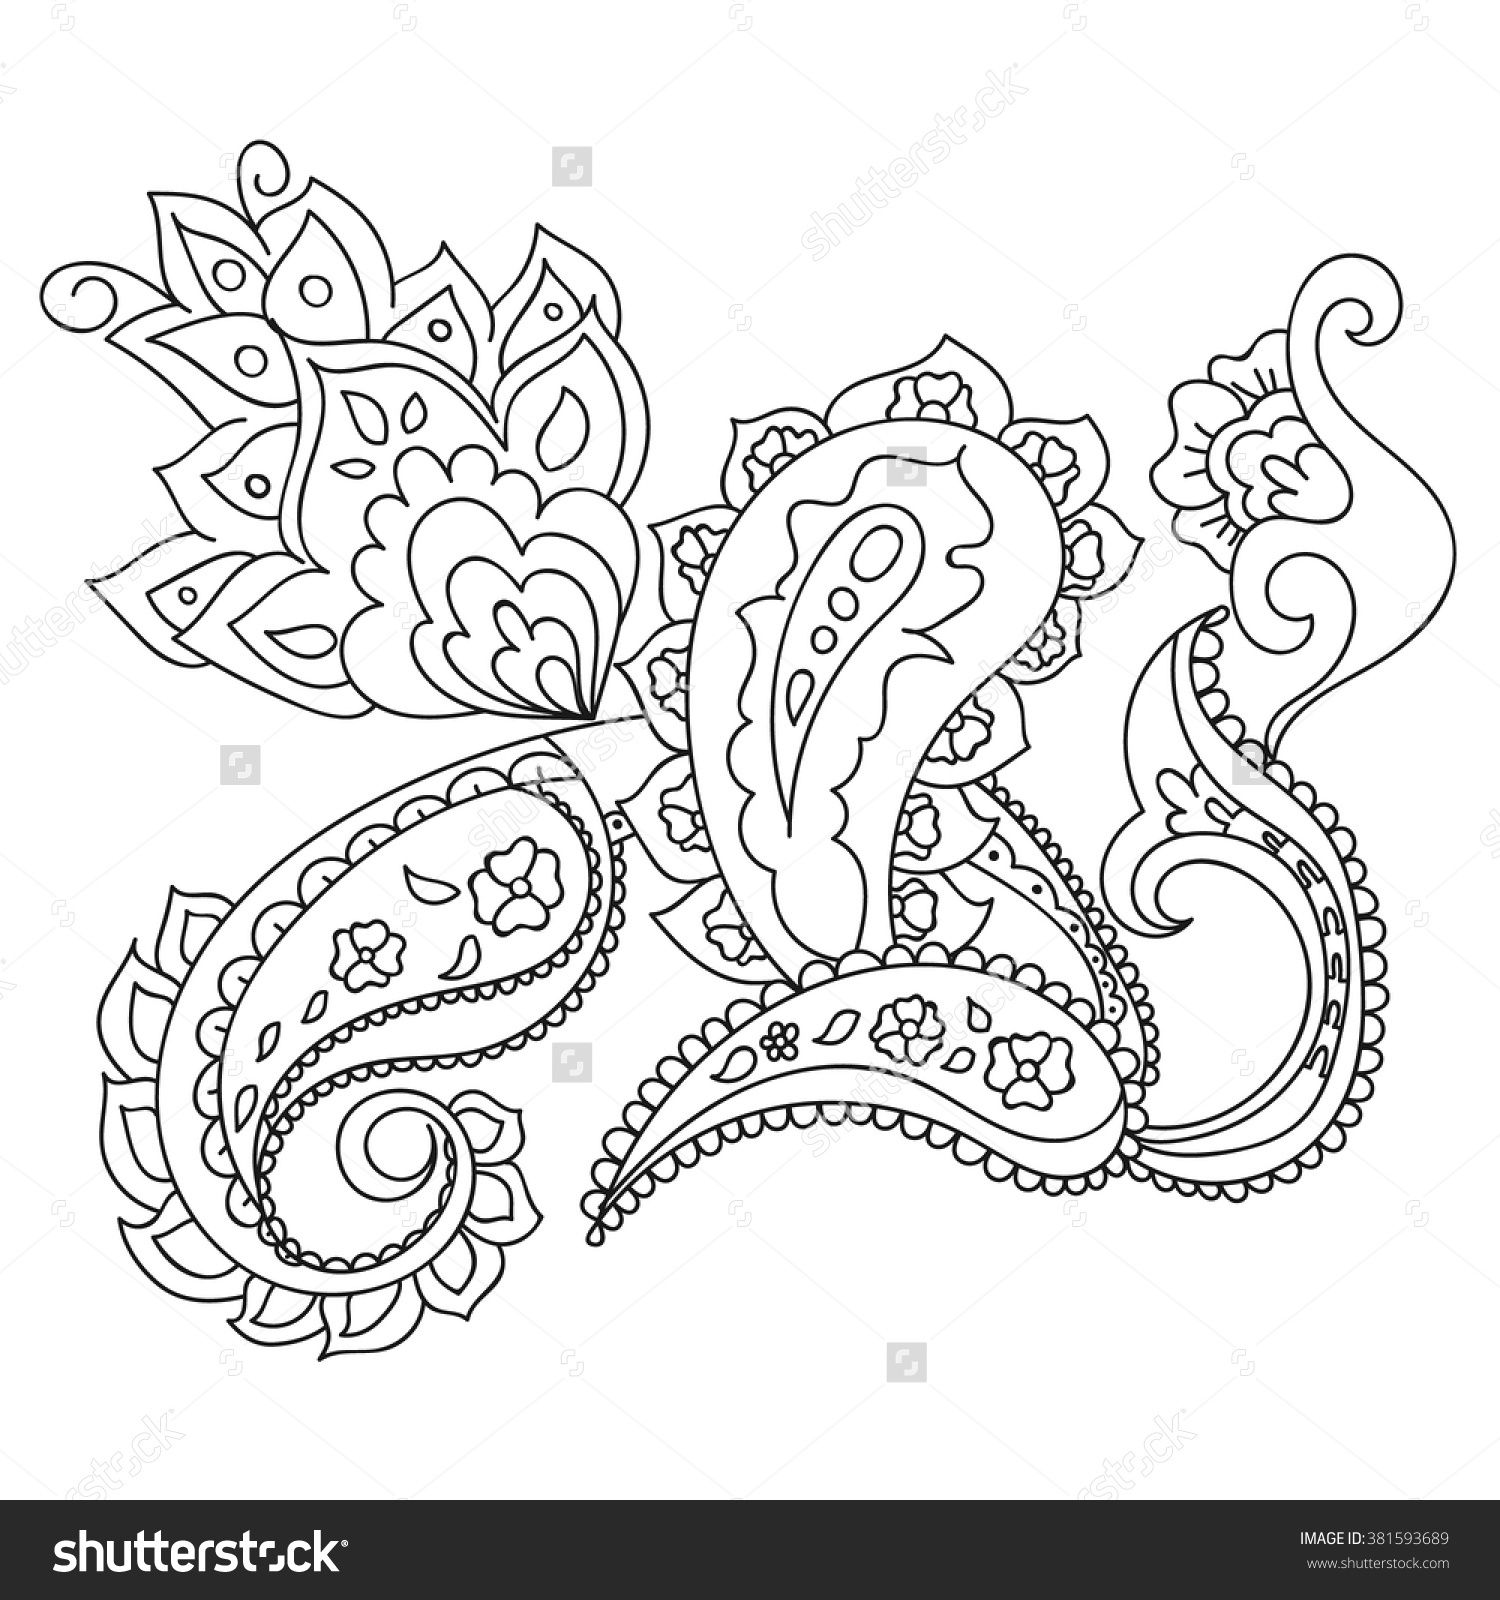 Black And White Hand Drawn Line Art Ornamental Ethnic Flowers Design Adult Coloring Book Interior